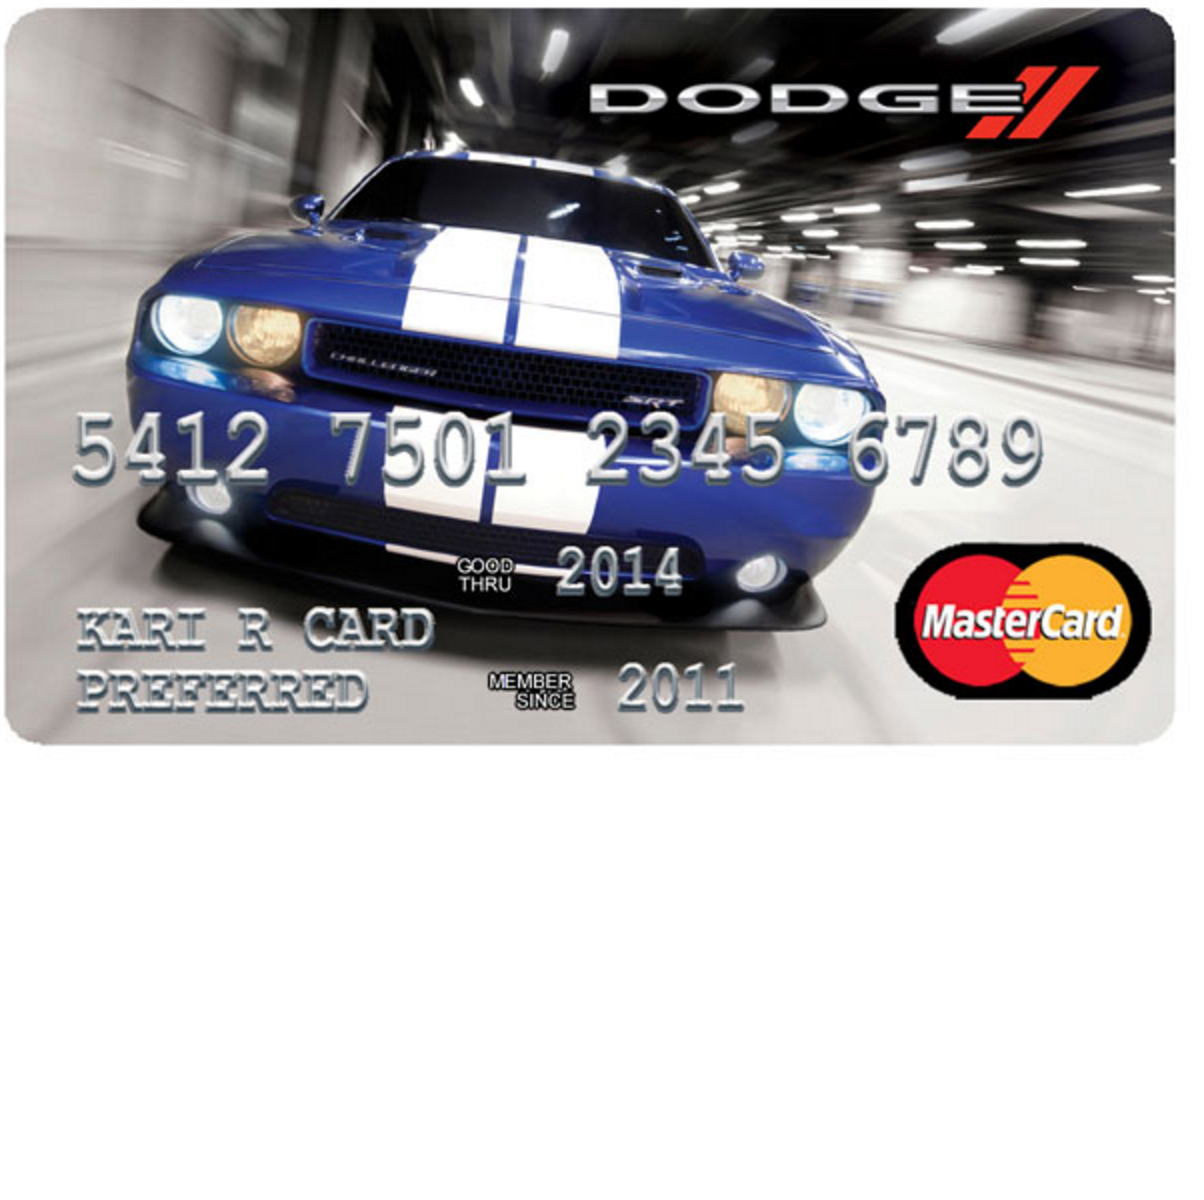 How to Apply for the Dodge Mastercard Credit Card